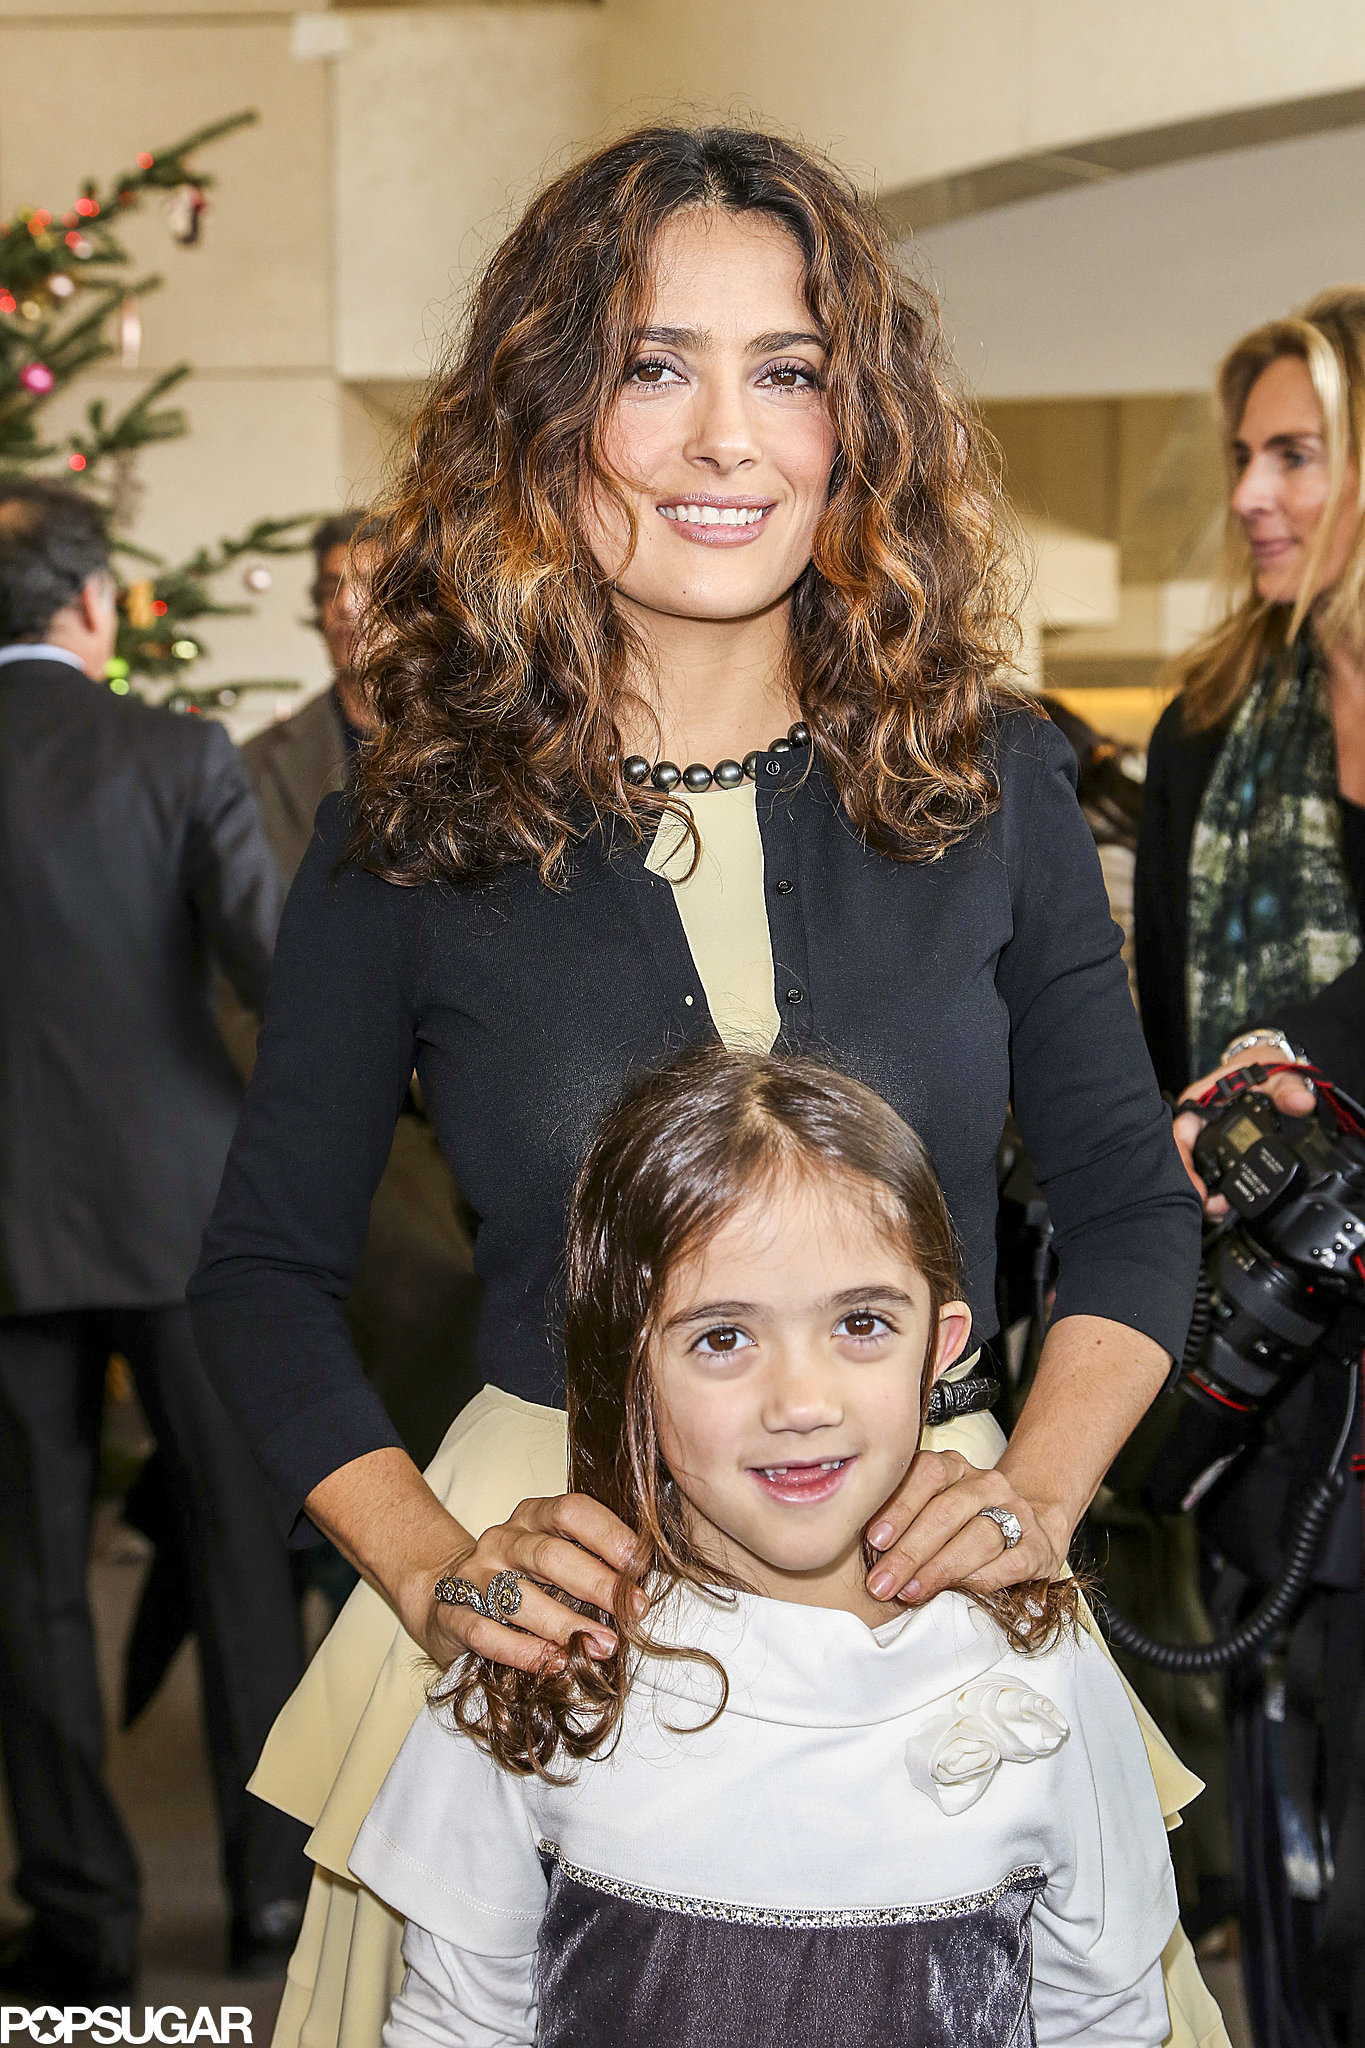 Salma Hayek and her daughter, Valentina, celebrated the holidays early in Paris at the Opéra Bastille.